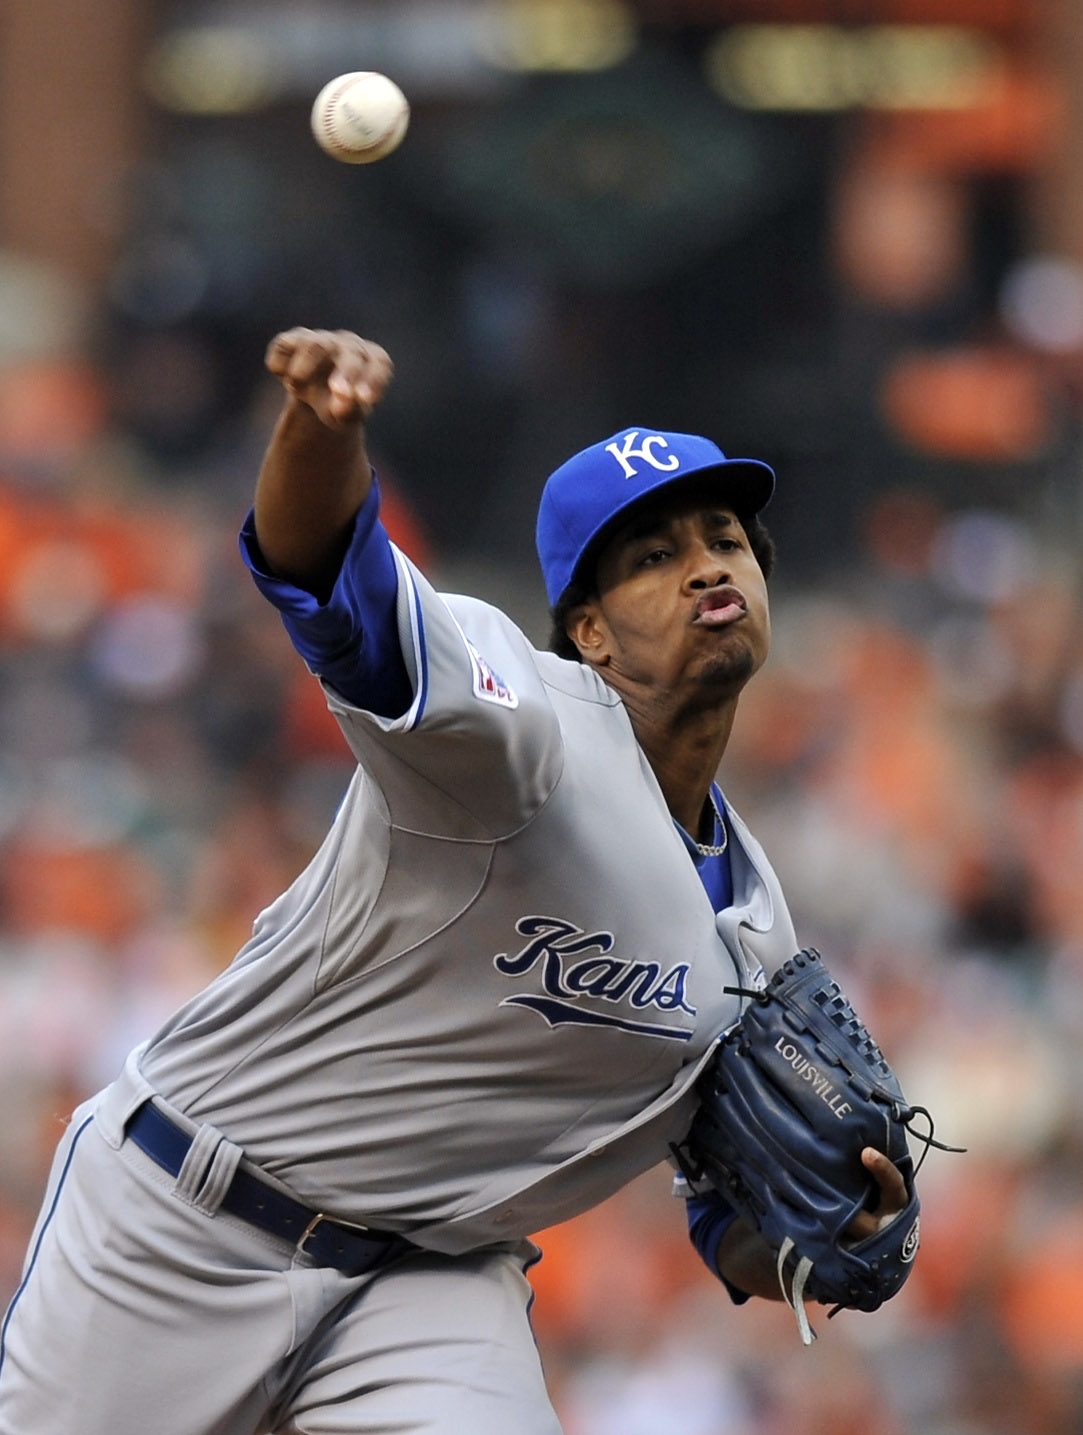 Follow Game 2 of the World Series live with Yahoo Sports